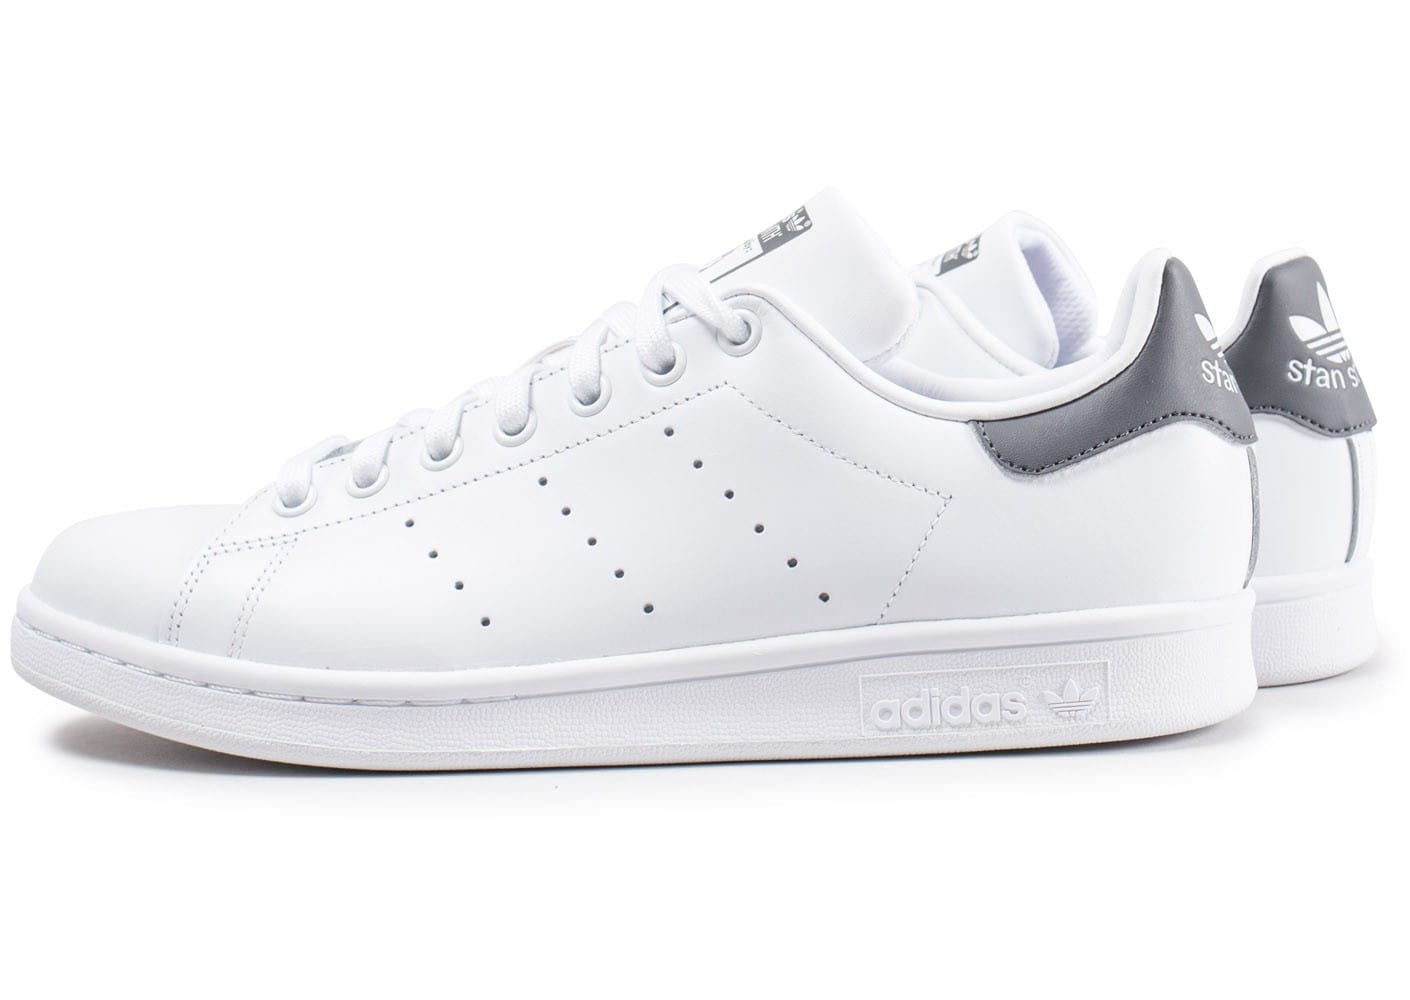 adidas stan smith blanche et grise fonc chaussures homme chausport. Black Bedroom Furniture Sets. Home Design Ideas